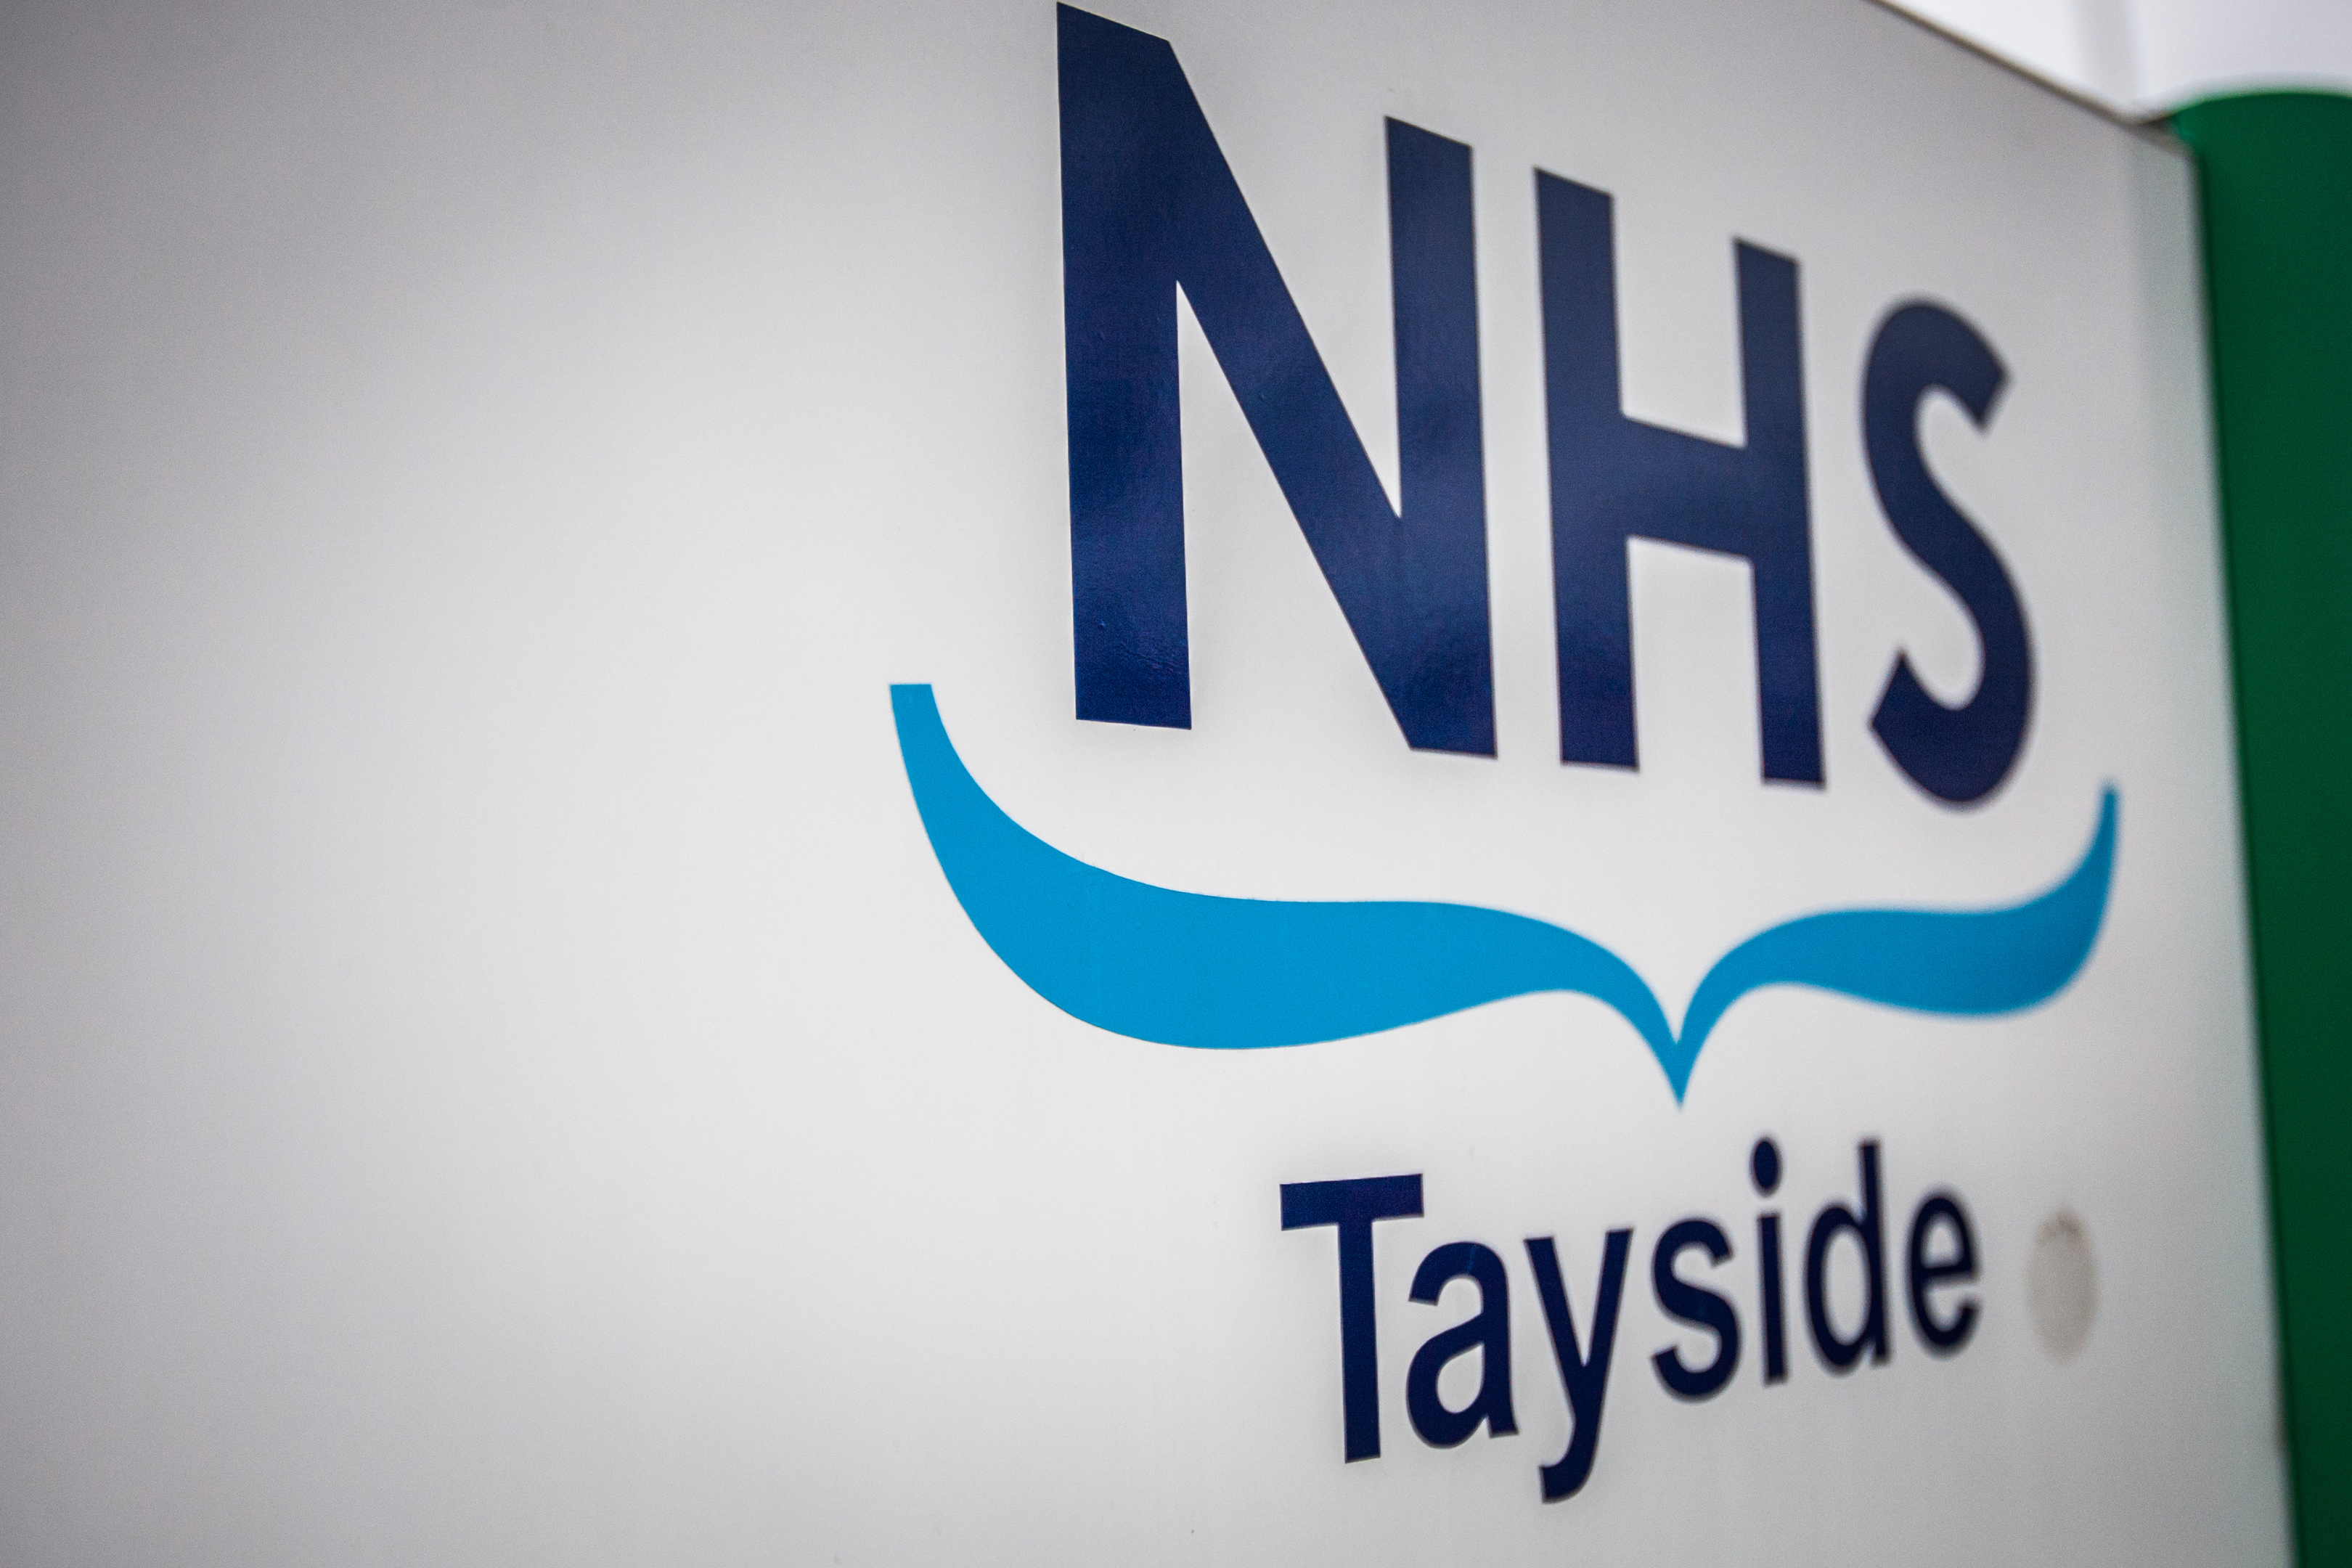 NHS Tayside is one of four Scots health boards that did not meet a target to complete 70% of terminations before nine weeks gestation.